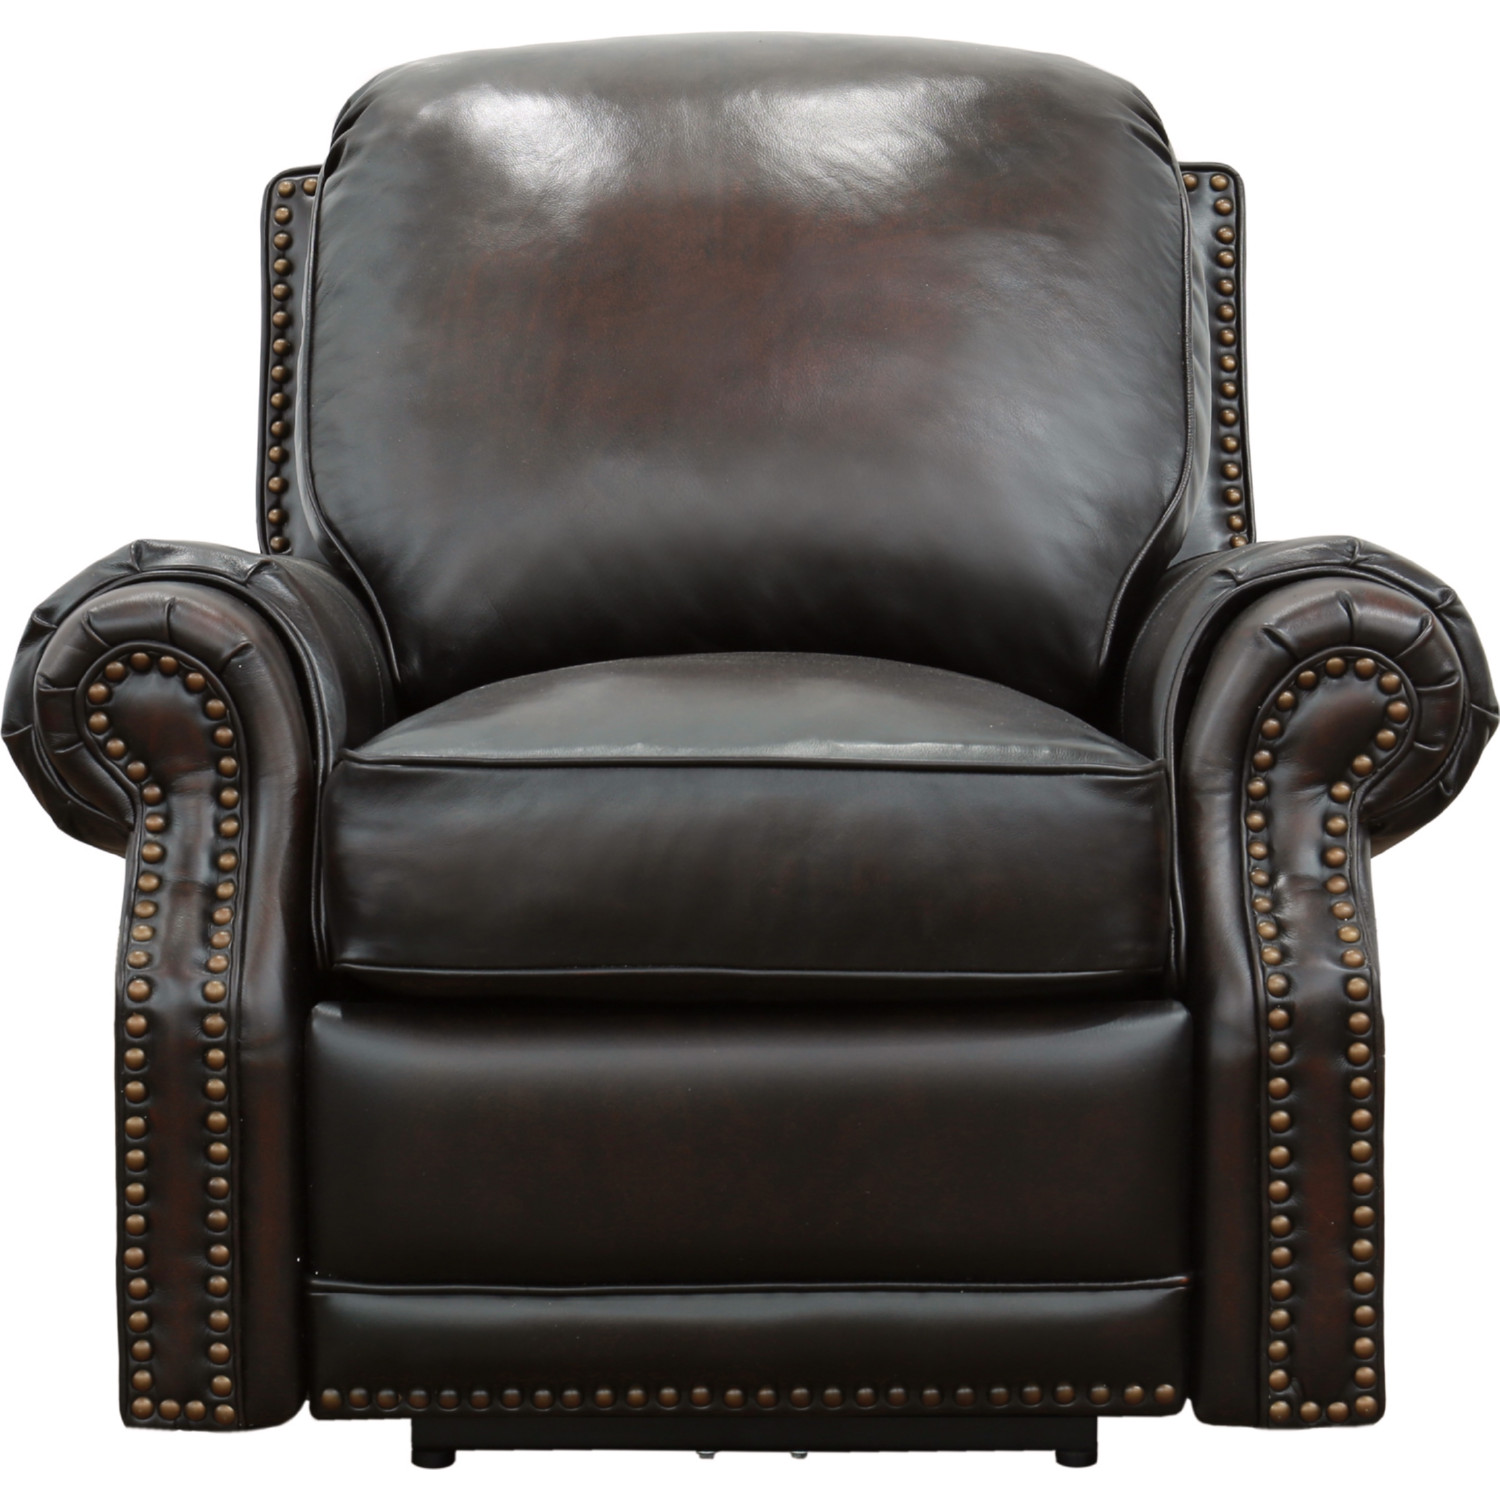 Enjoyable Premier Ii Power Reclining Arm Chair In Stetson Coffee Top Grain Leather By Barcalounger Bralicious Painted Fabric Chair Ideas Braliciousco